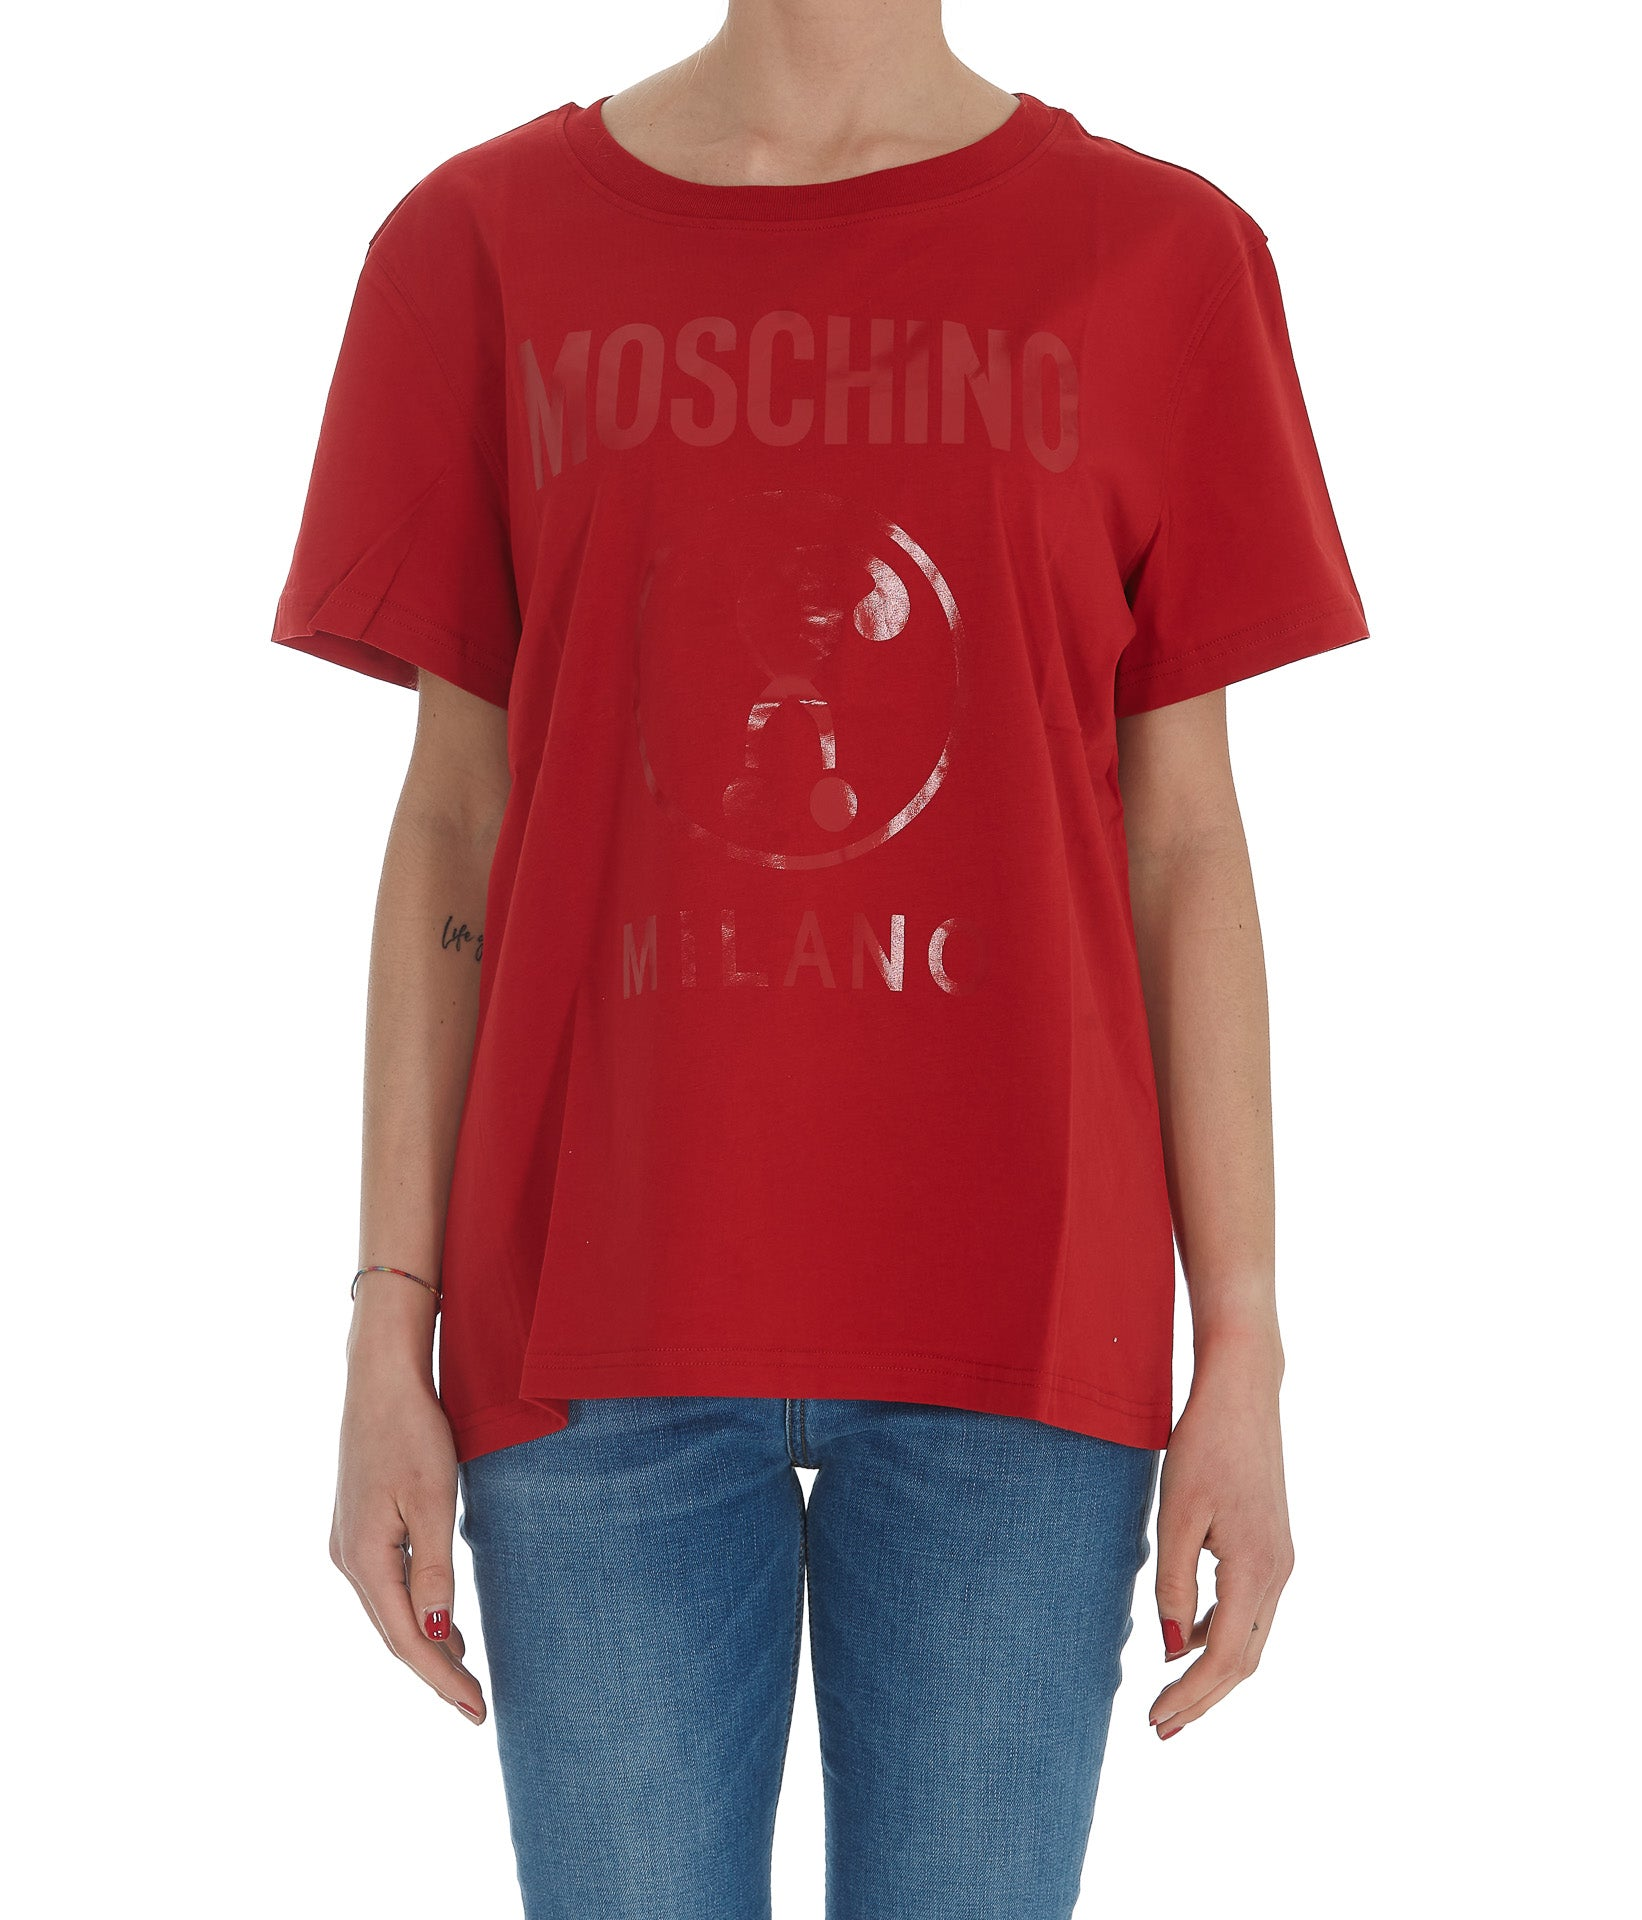 Moschino MOSCHINO DOUBLE QUESTION MARK PRINT T